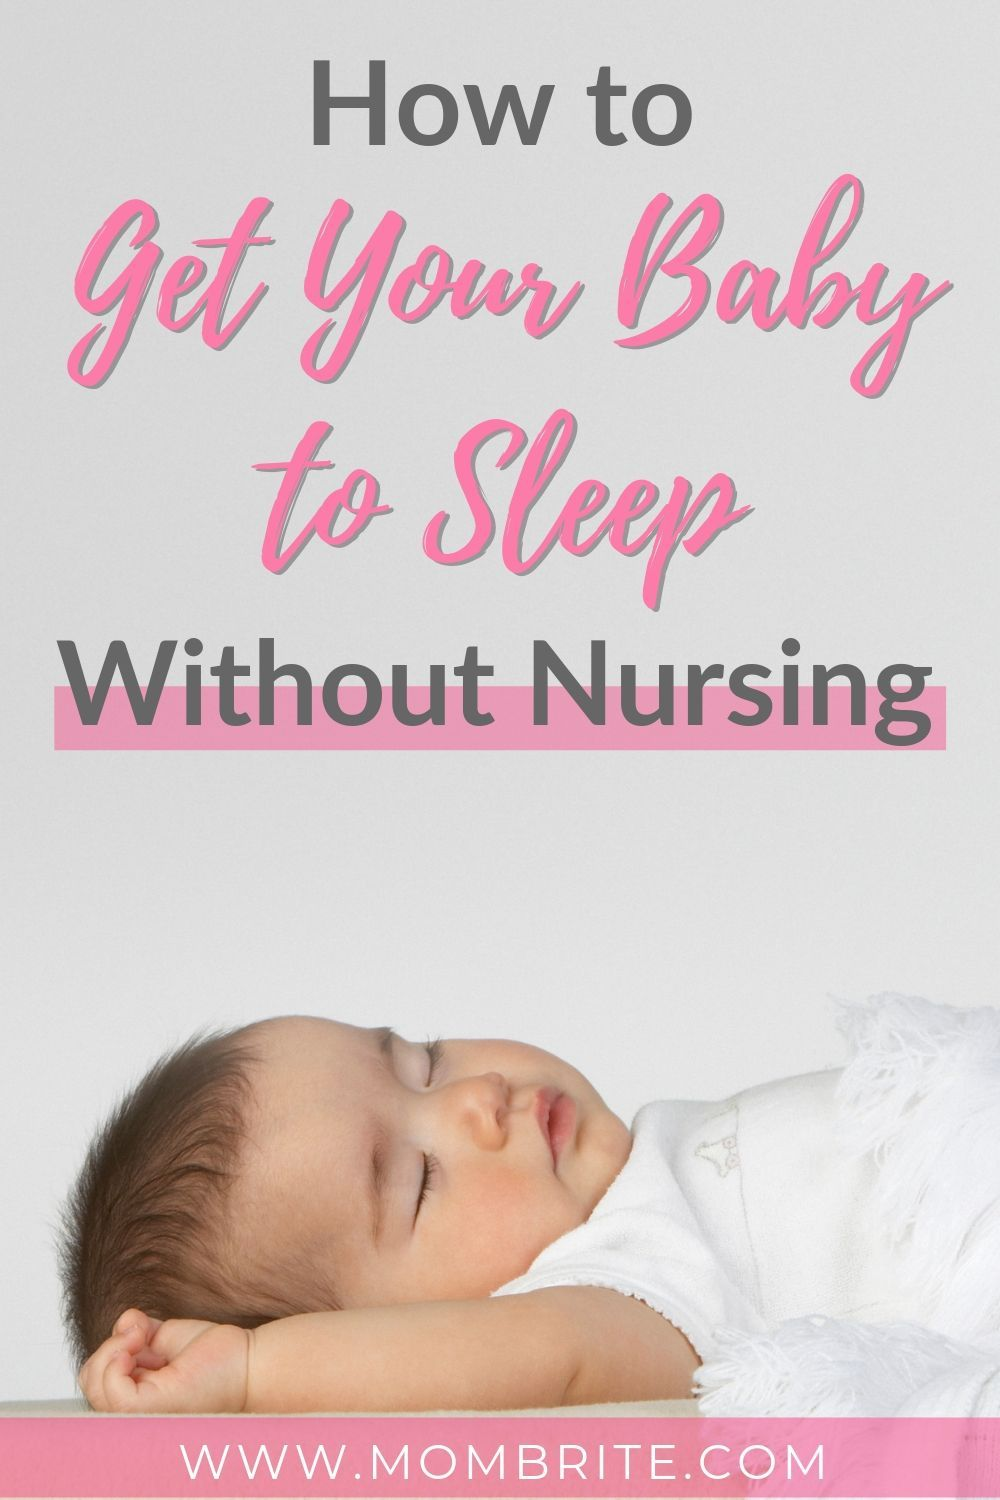 How To Get Your Baby To Sleep Without Nursing Baby Sleep Newborn Baby Sleep Getting Baby To Sleep